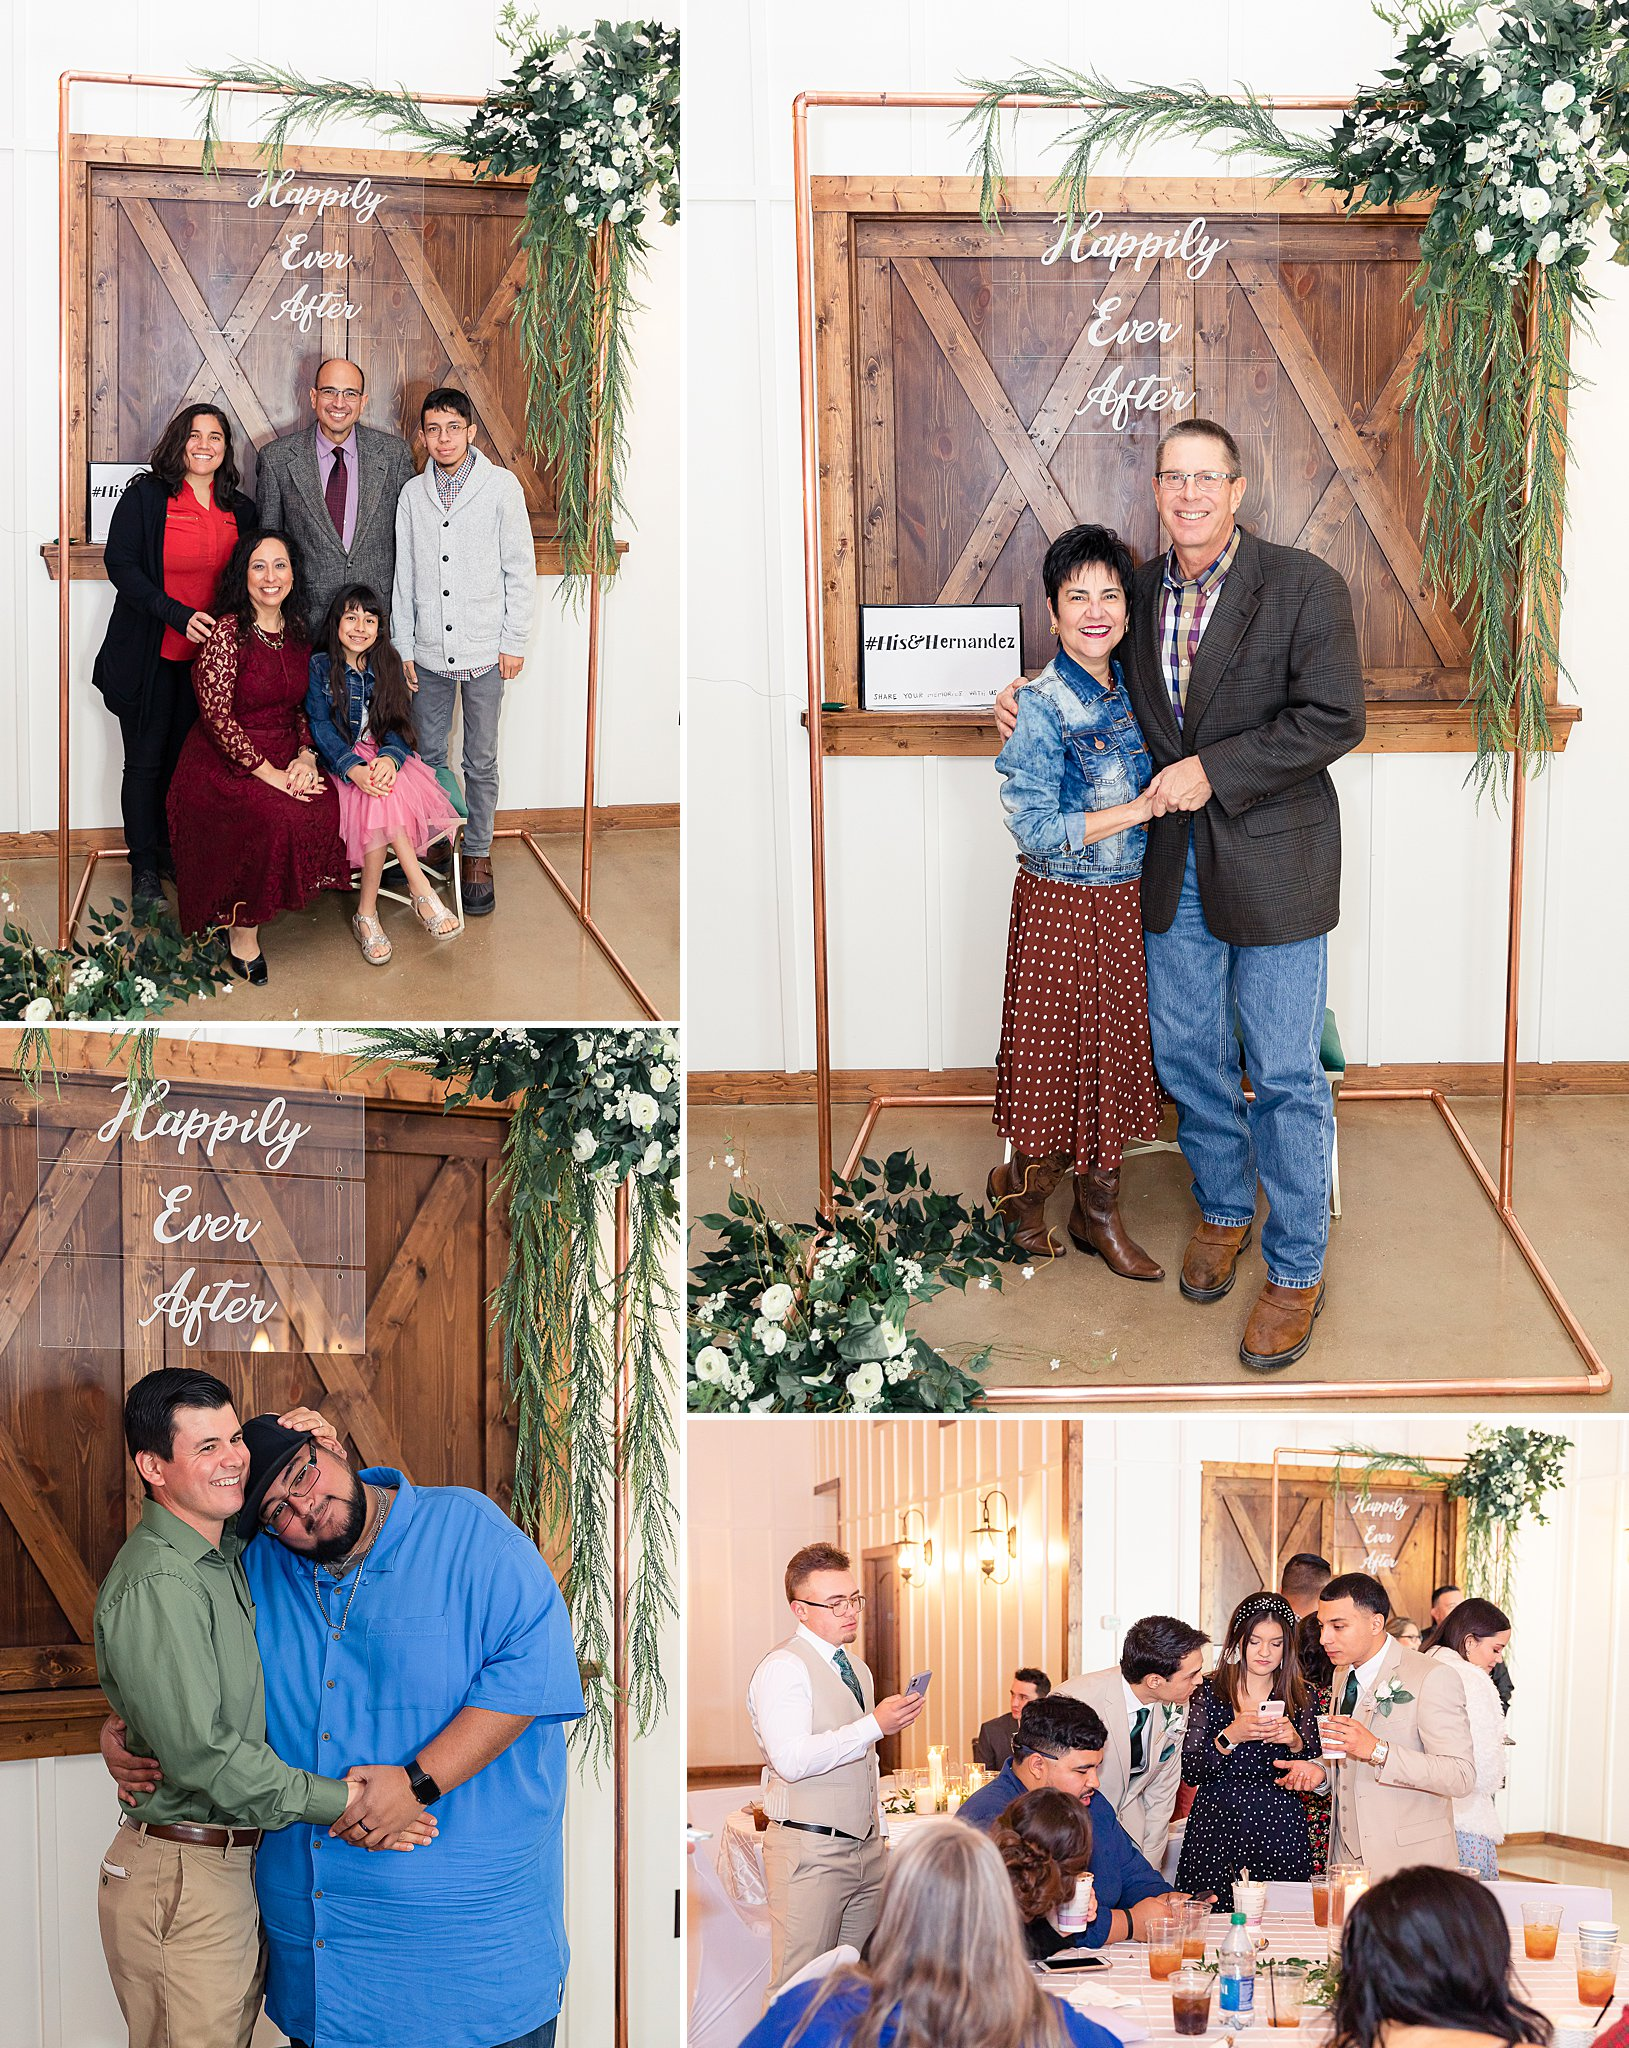 Carly-Barton-Photography-Texas-Wedding-Photographer-Western-Sky-Wedding-Event-Venue-Emerald-Green-Theme_0056.jpg